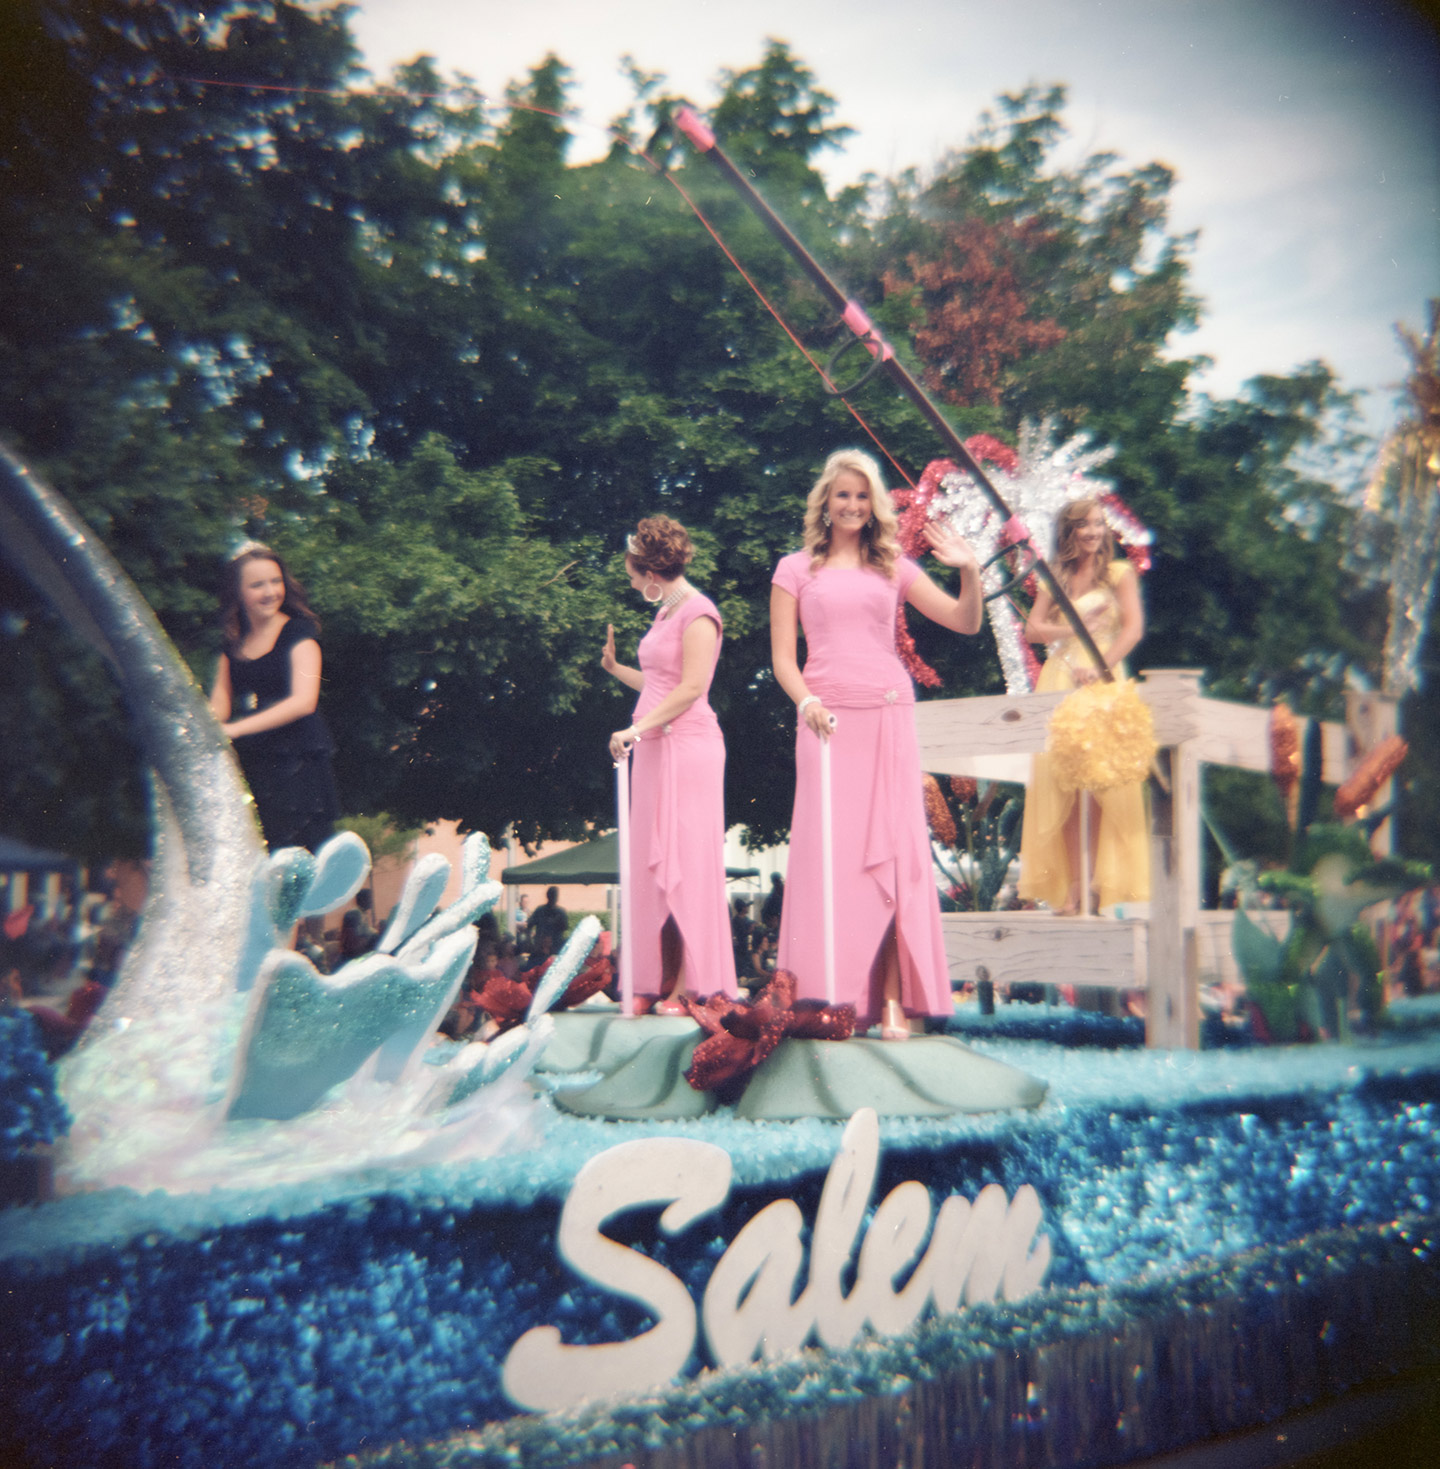 Beauty contestants from Salem Utah ride their float in the parade